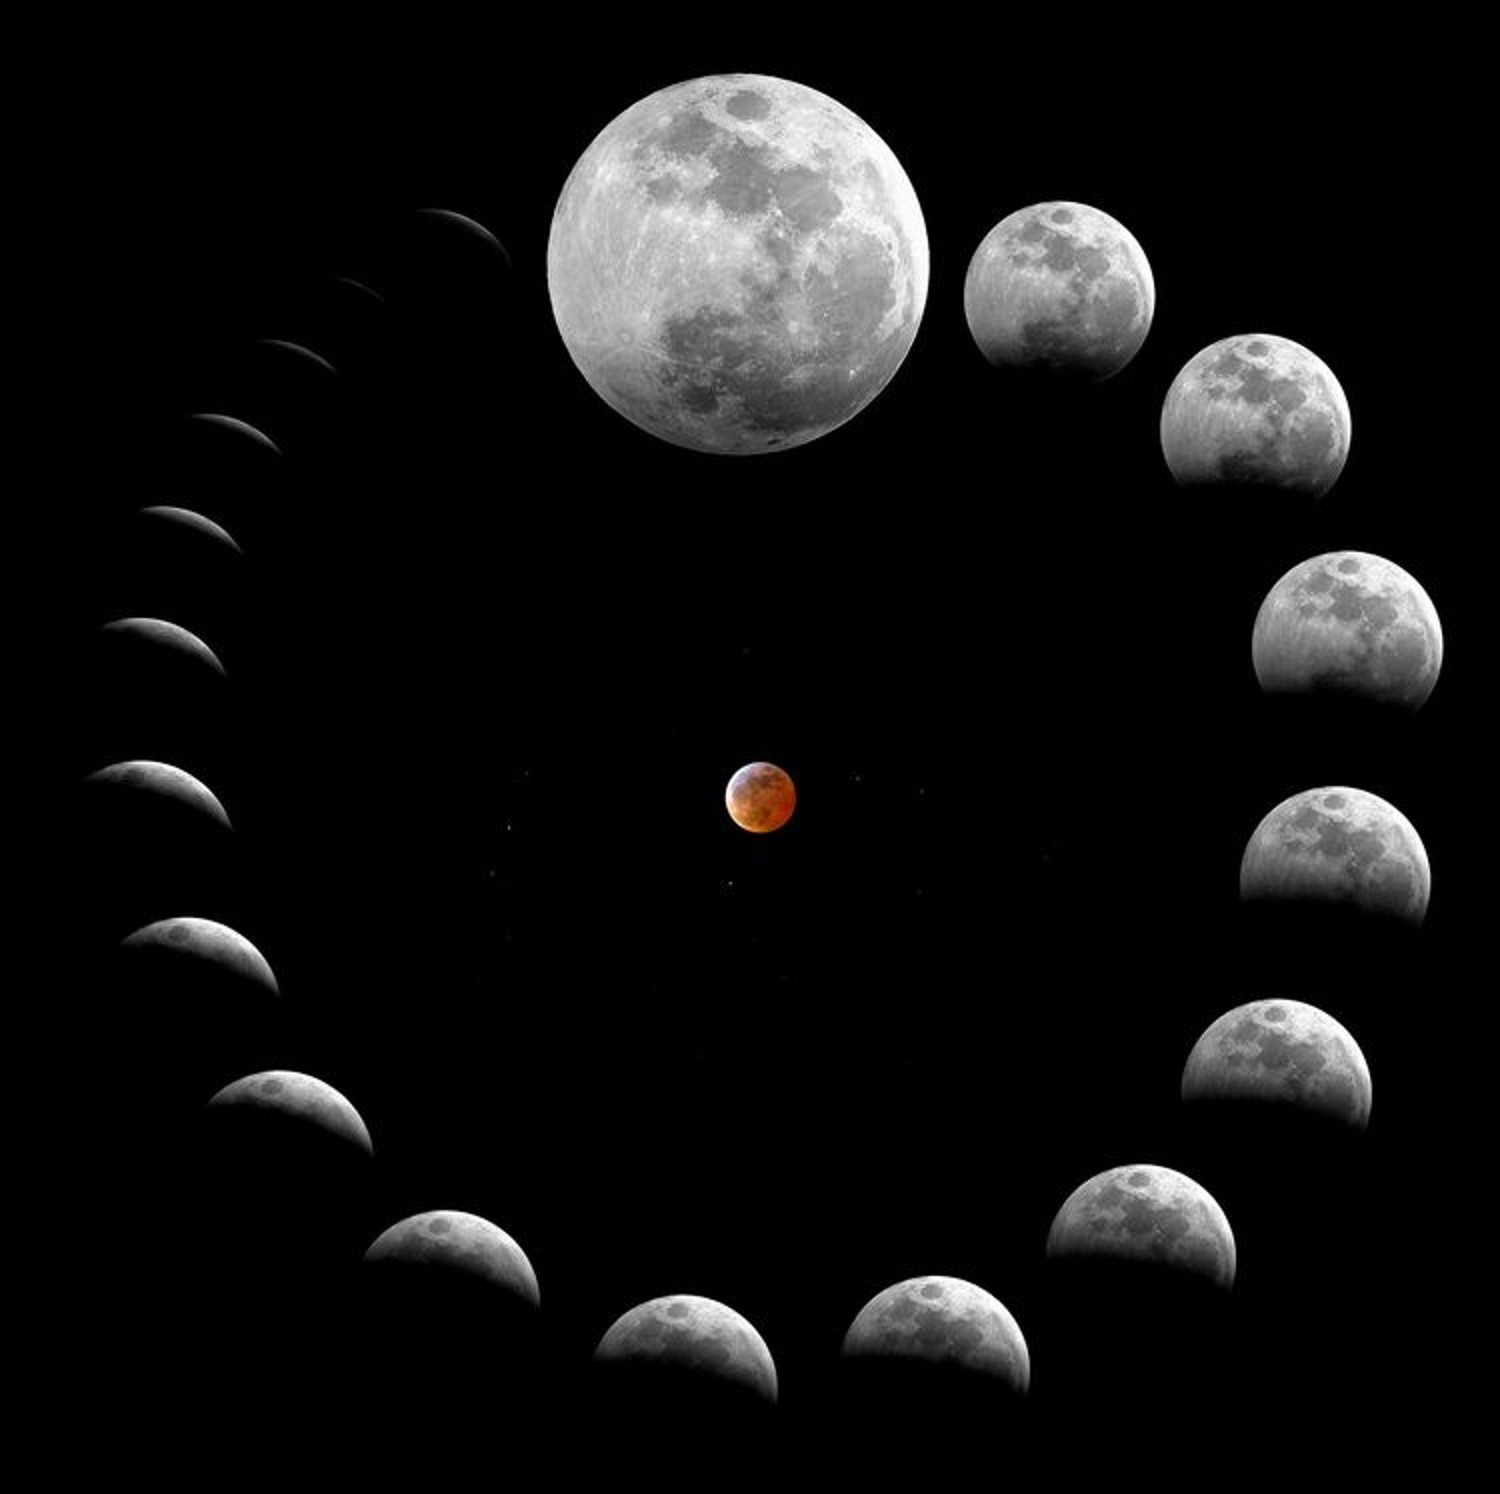 blood moon phase tonight - photo #37